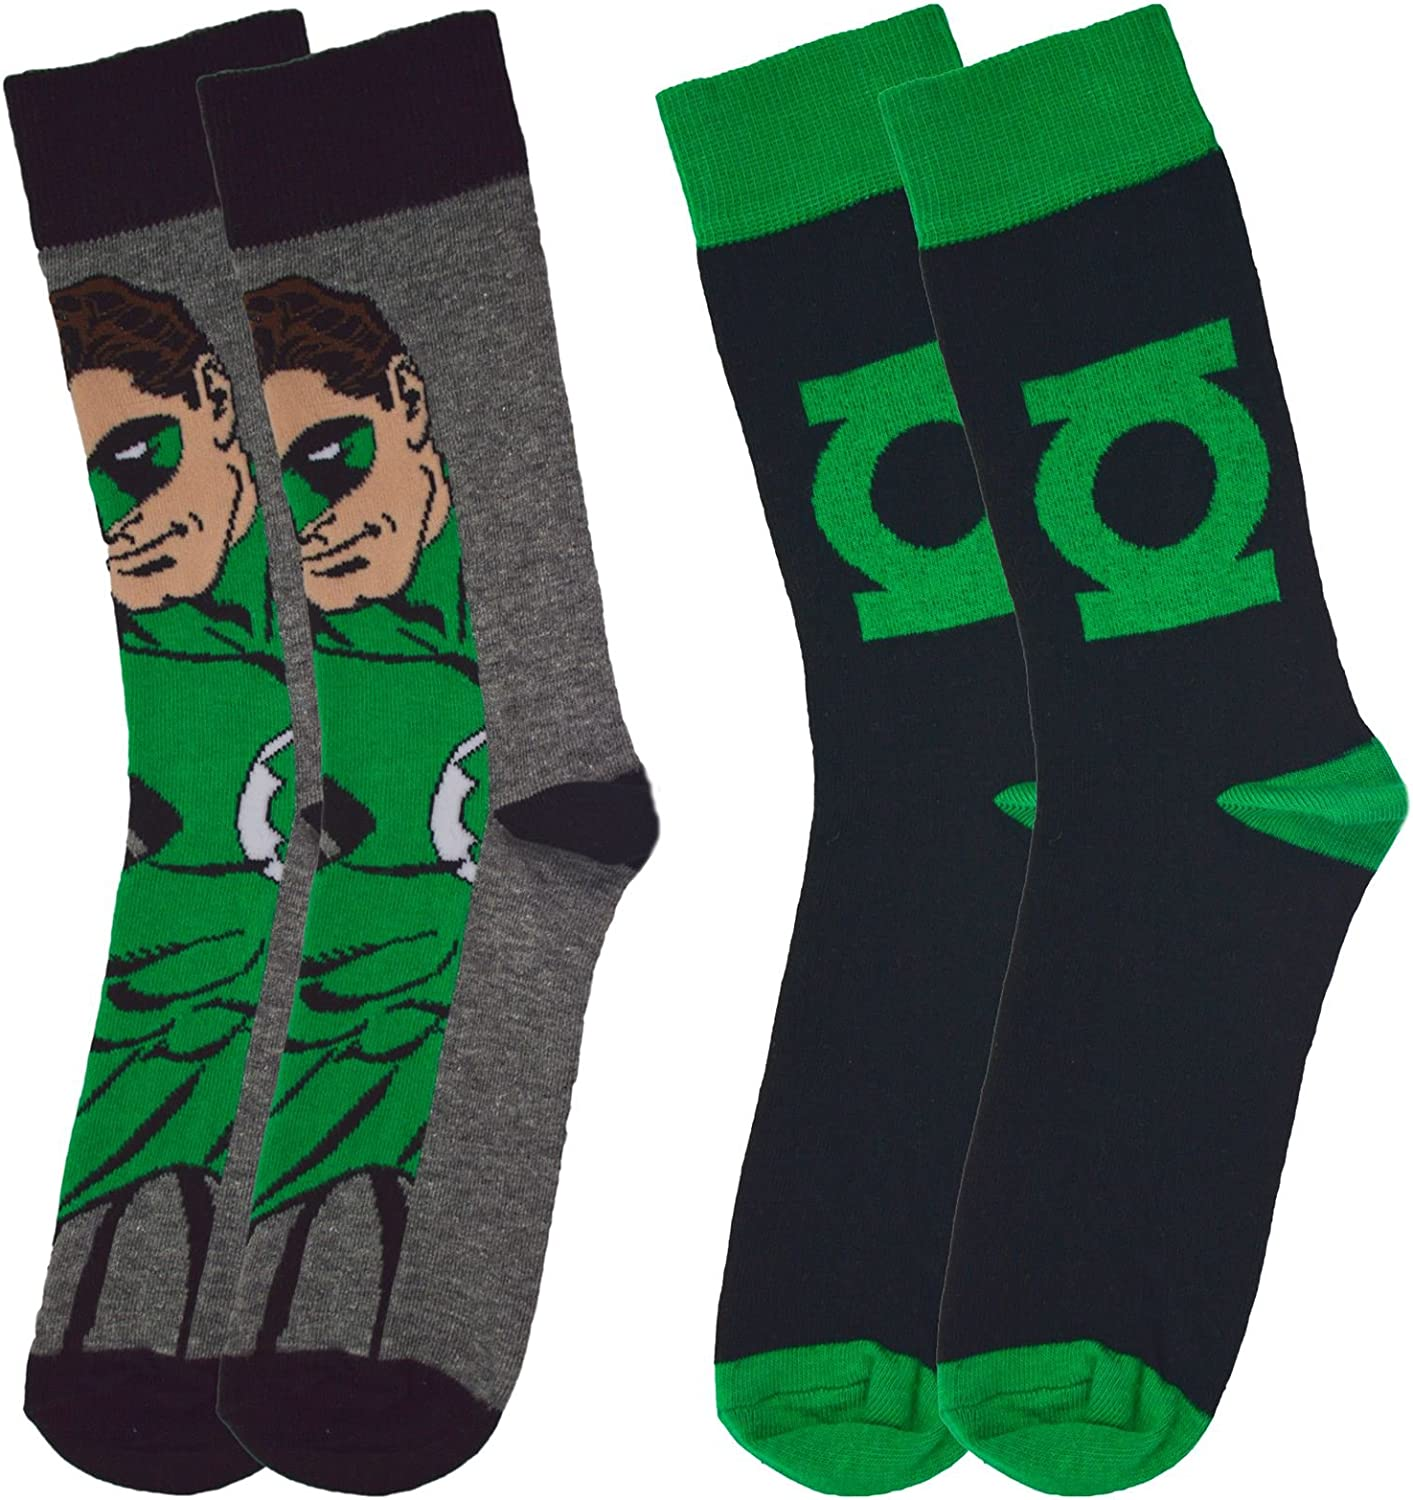 Official DC Comics Green Lantern Character Assorted Socks (2 Pairs) - One Size